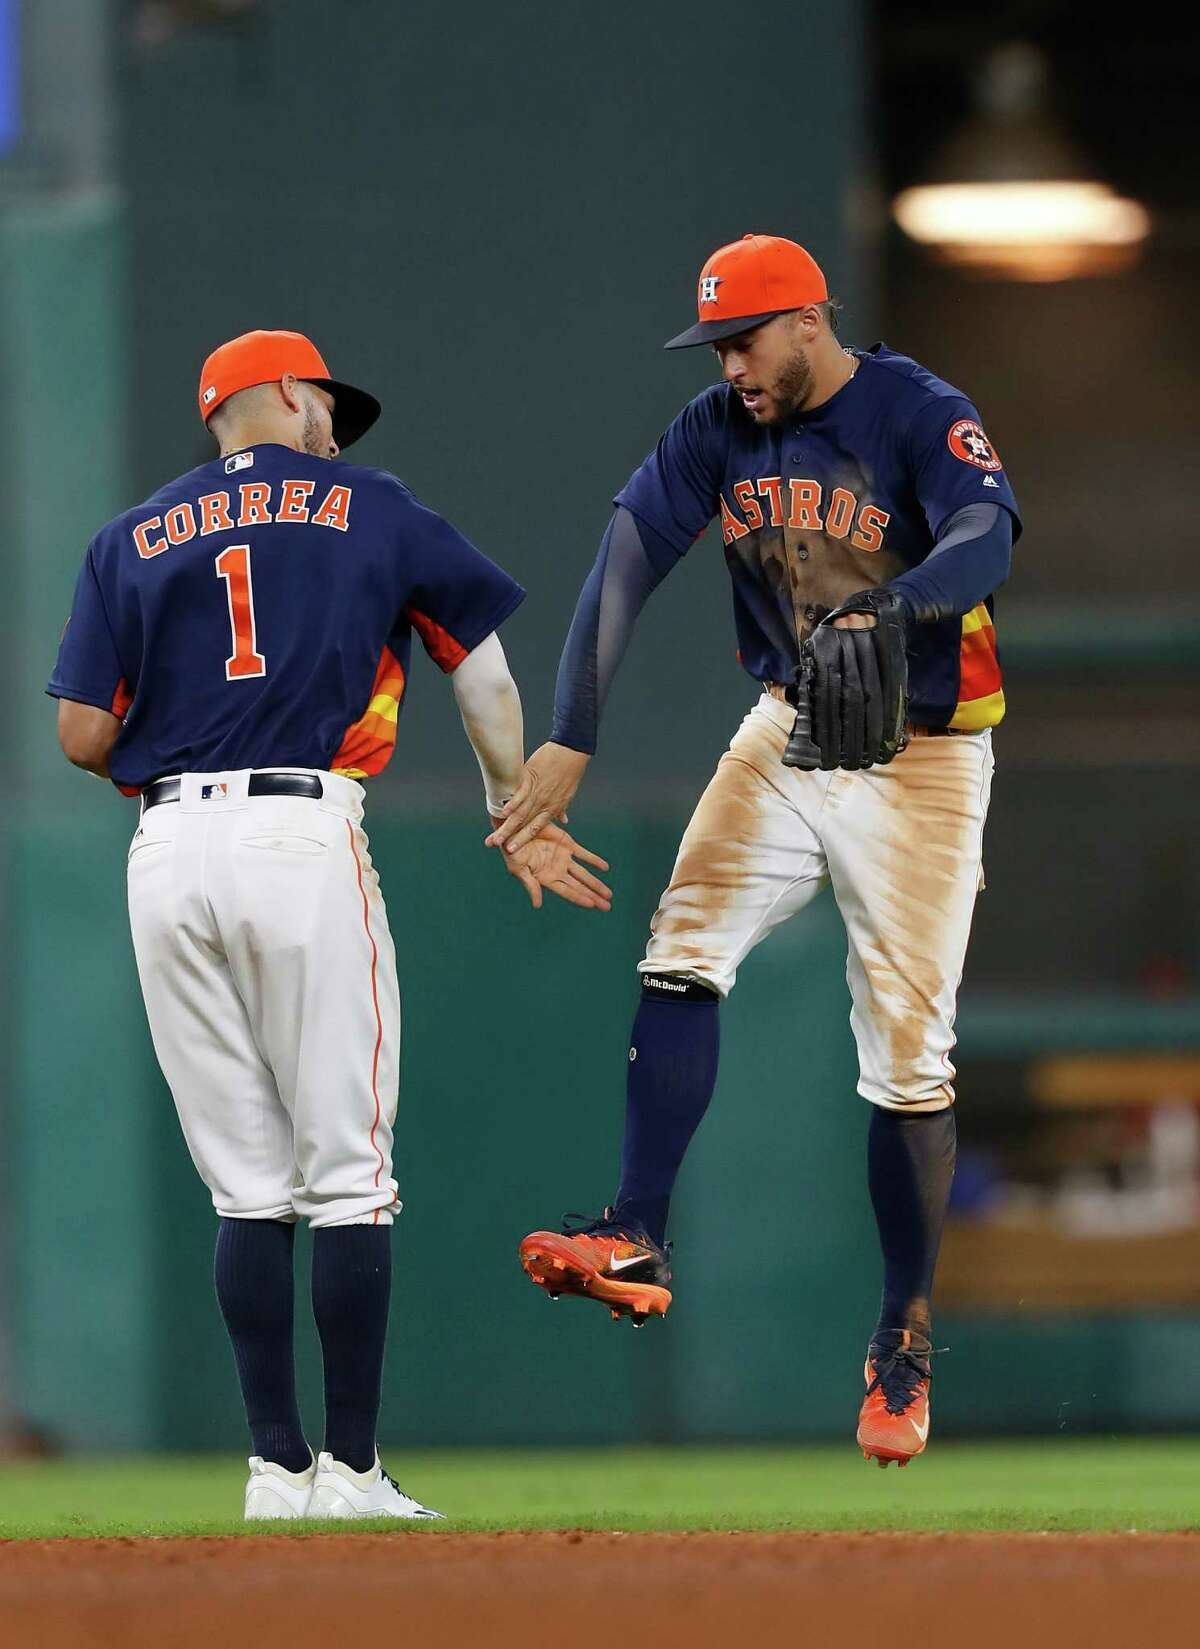 Houston Astros George Springer (4) and Carlos Correa (1) celebrate the Astros 4-1 win over Los Angeles Angels after an MLB game at Minute Maid Park, Sunday, Sept. 25, 2016 in Houston.